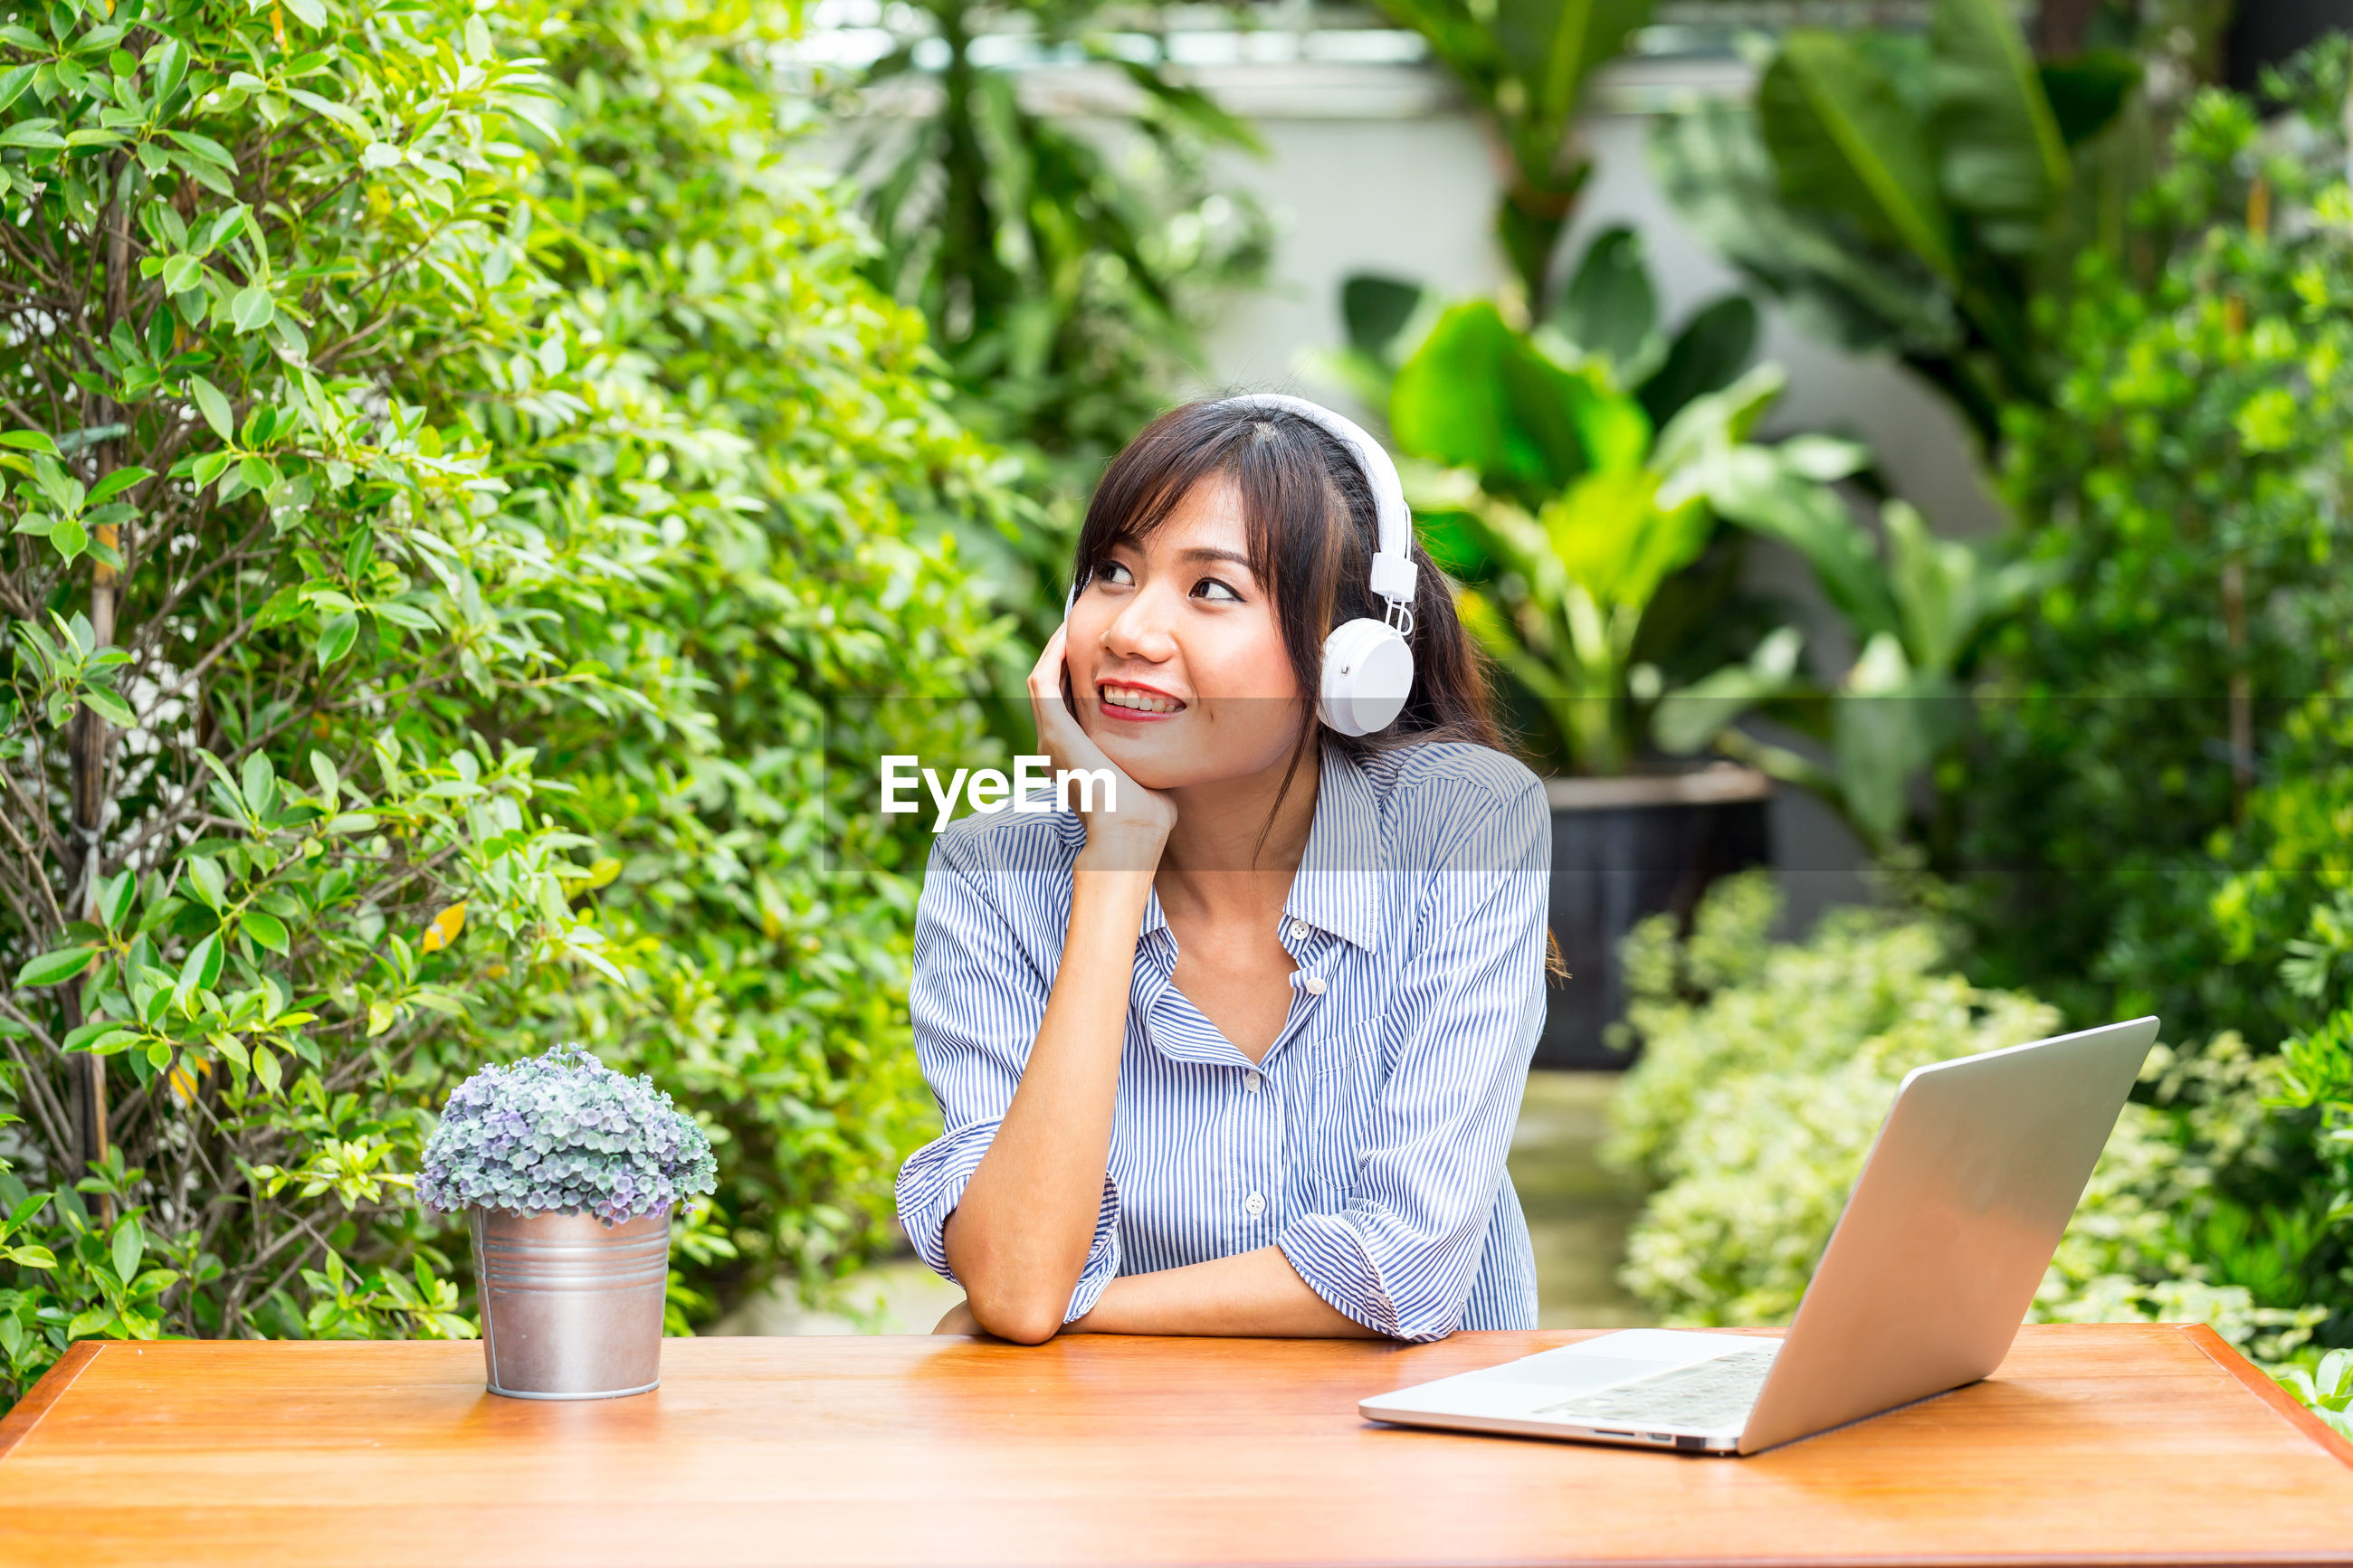 Smiling young woman listening to music while sitting at table against plants